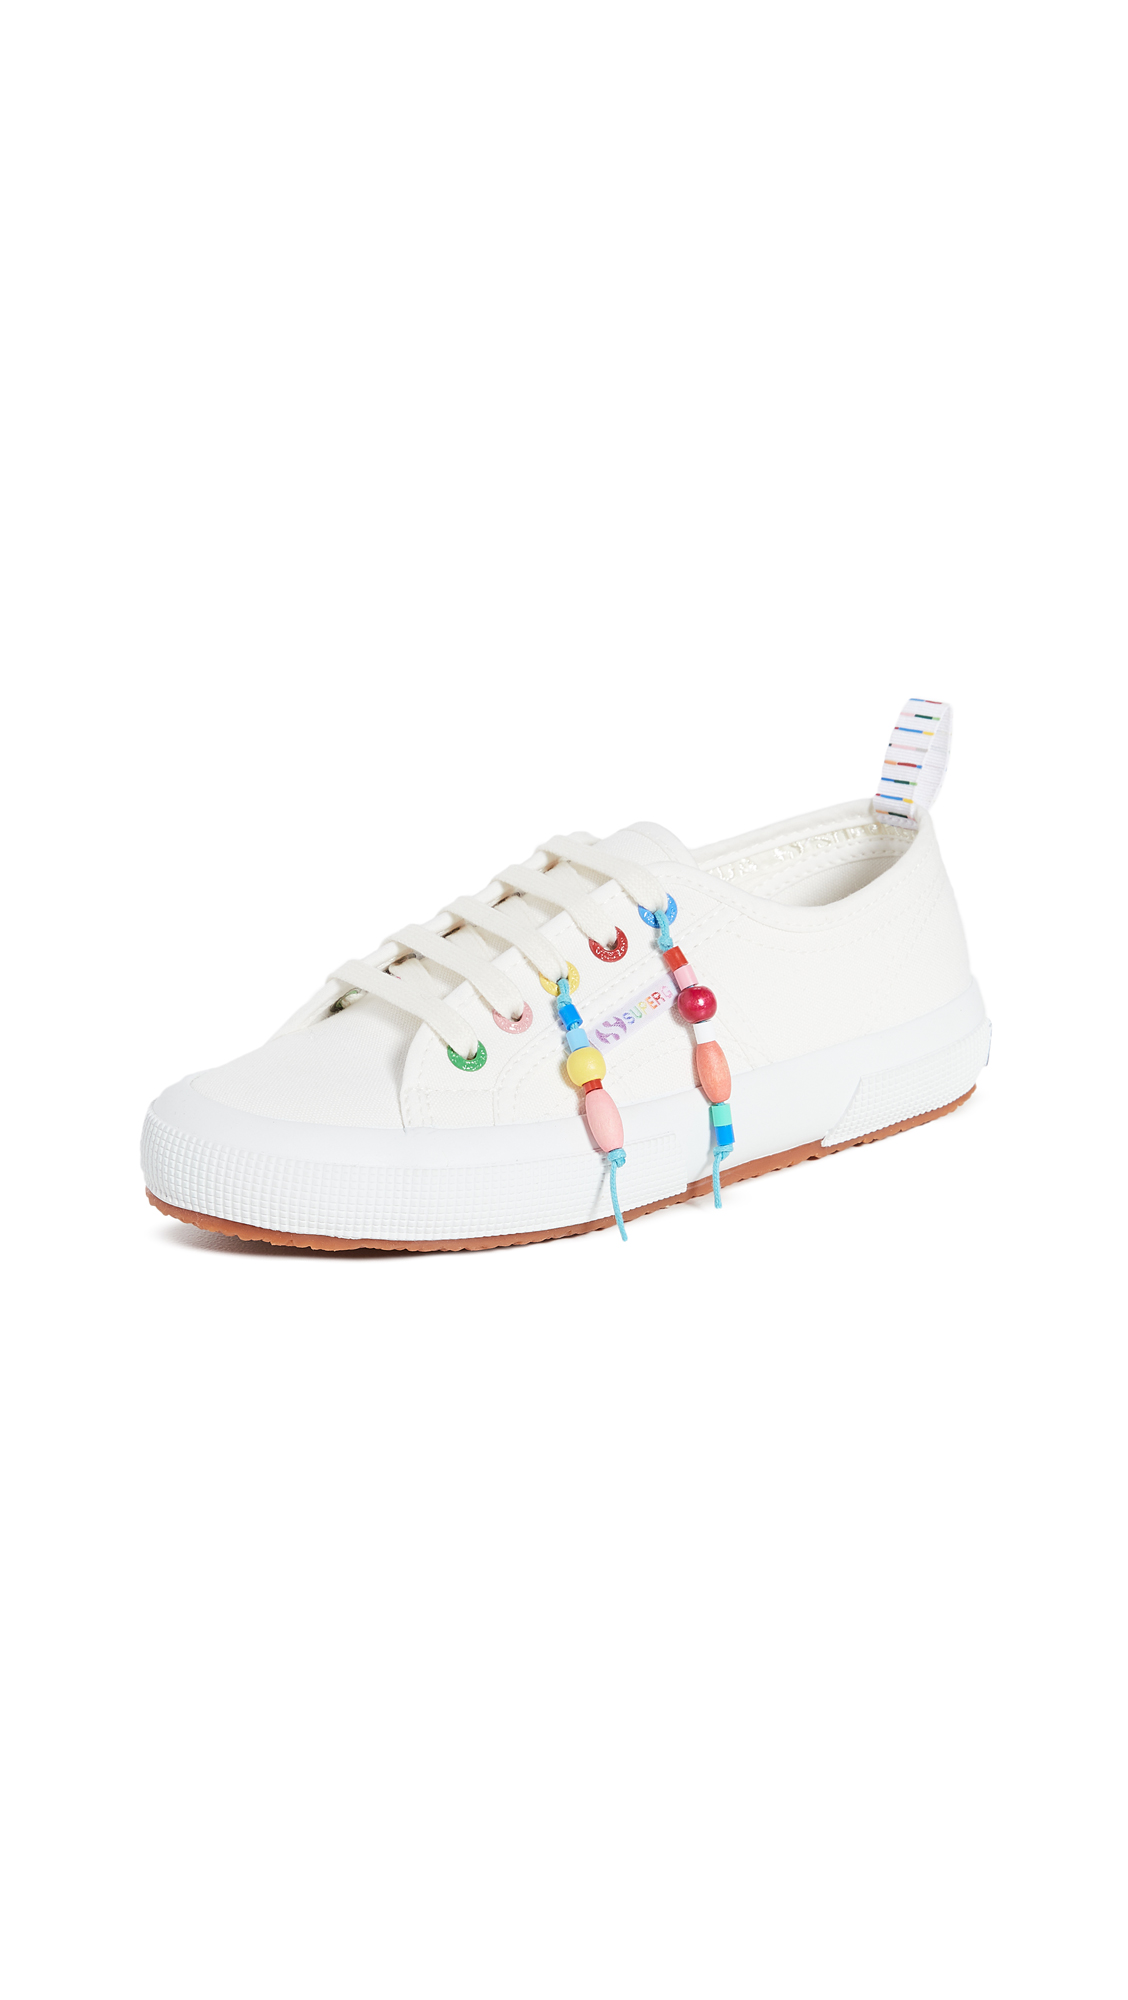 Mira Mikati x Superga Beaded Fringe Sneakers - 30% Off Sale